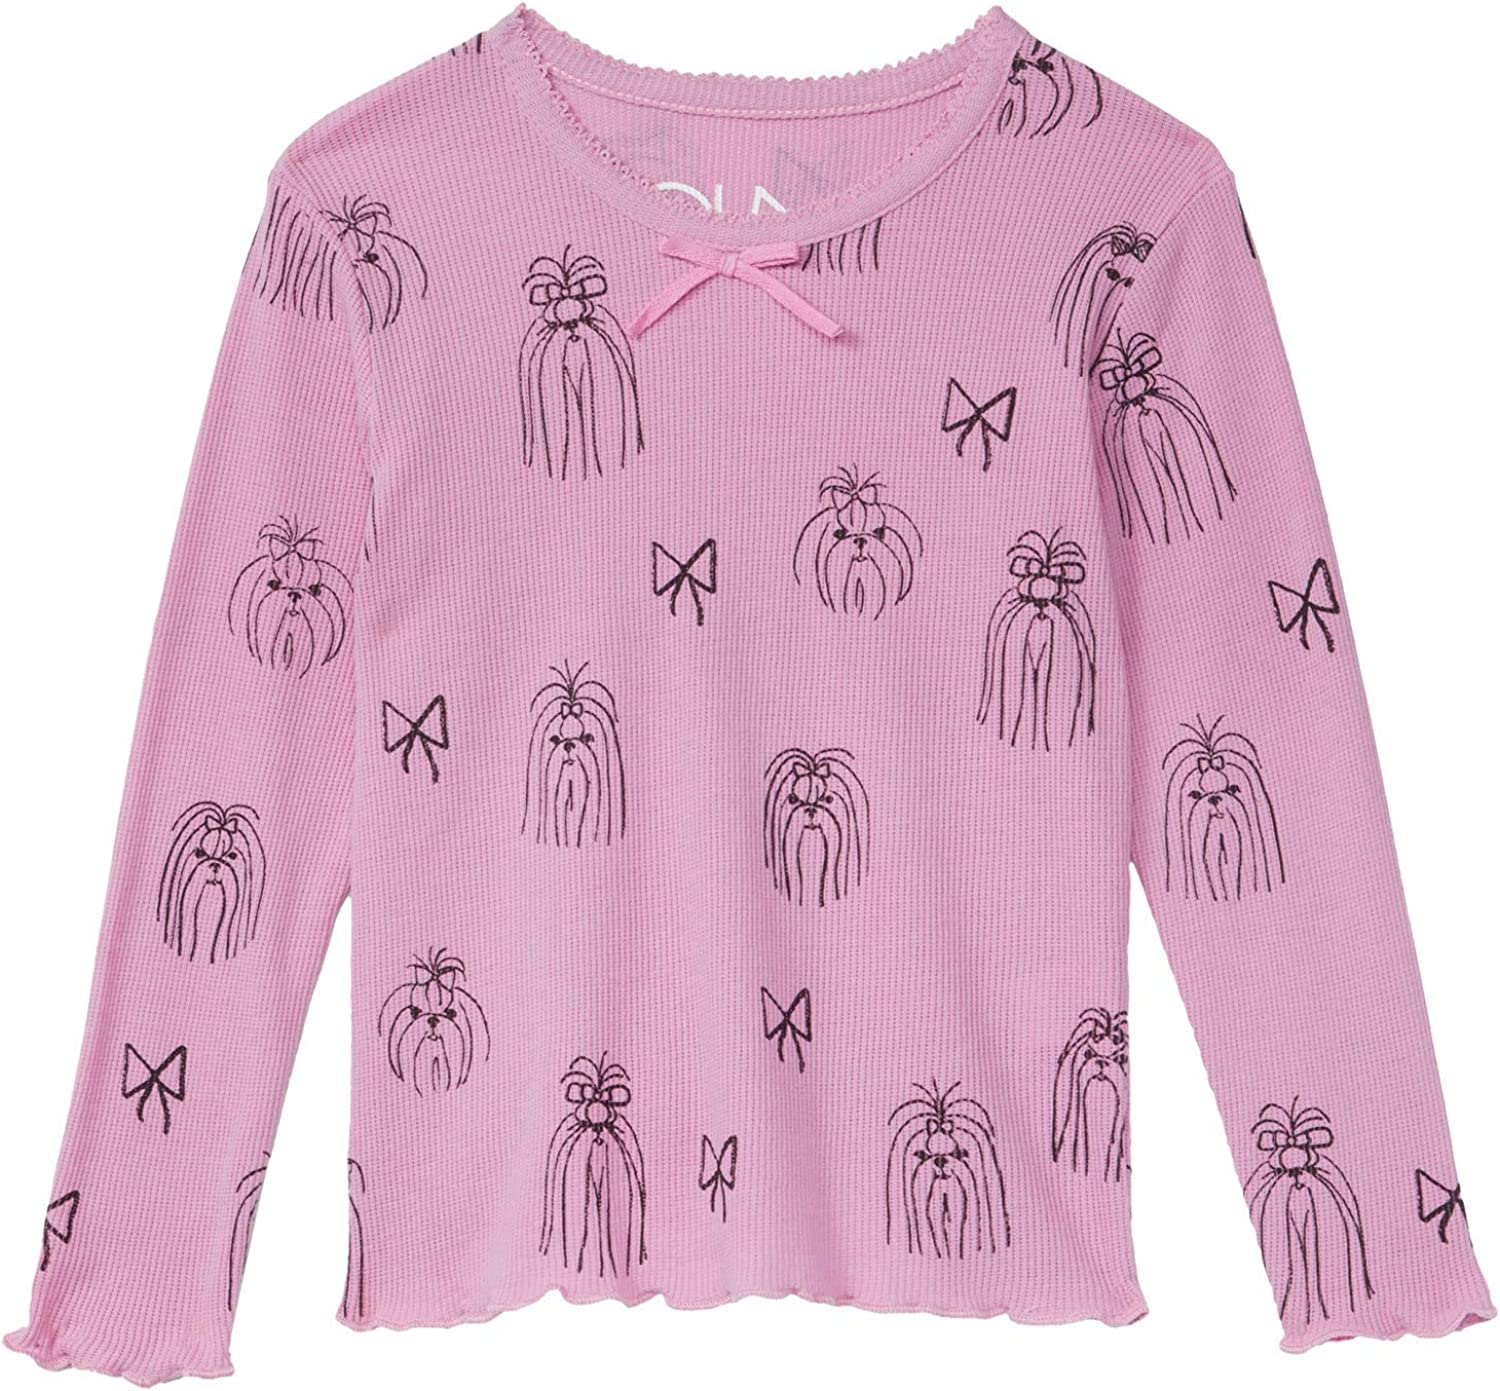 CHASER girls Thermal Scallop Edge Long Sleeve Tee W/Bow (Toddler/Little Kids)